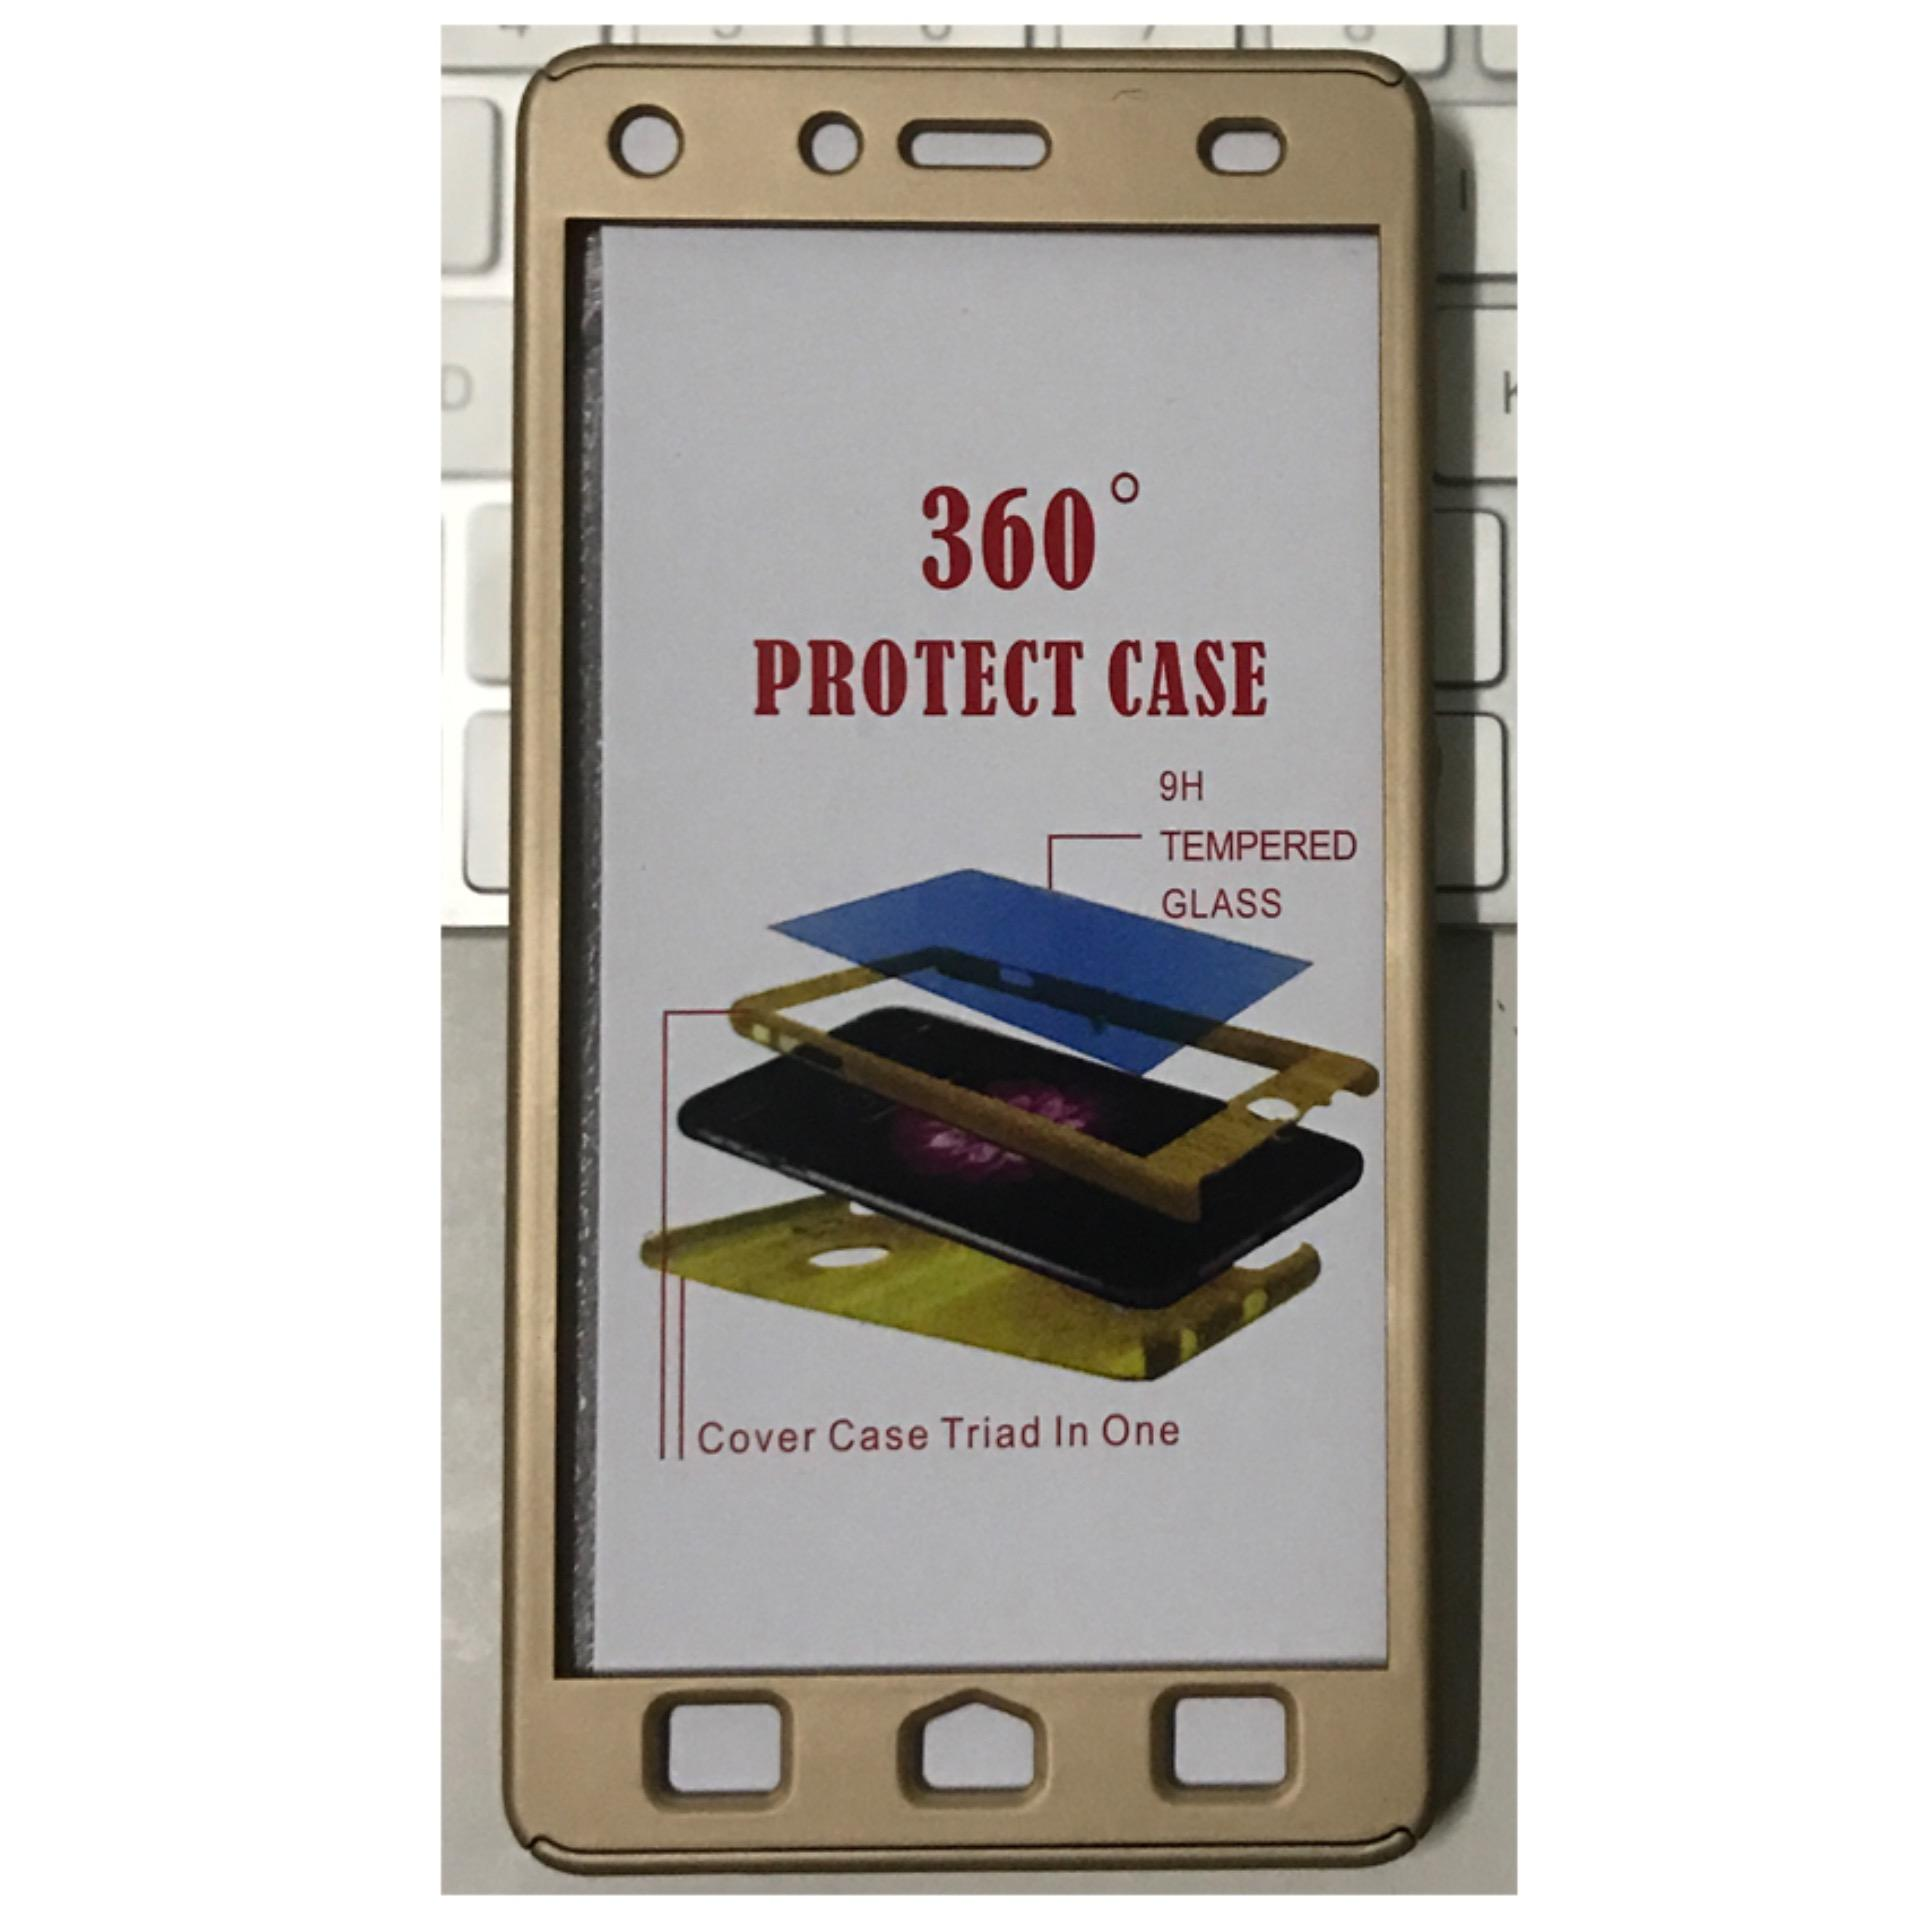 ... iCase Armor Protector 360 Degree Case For Infinix X557 infinix X556 Hot 4 Full Protection